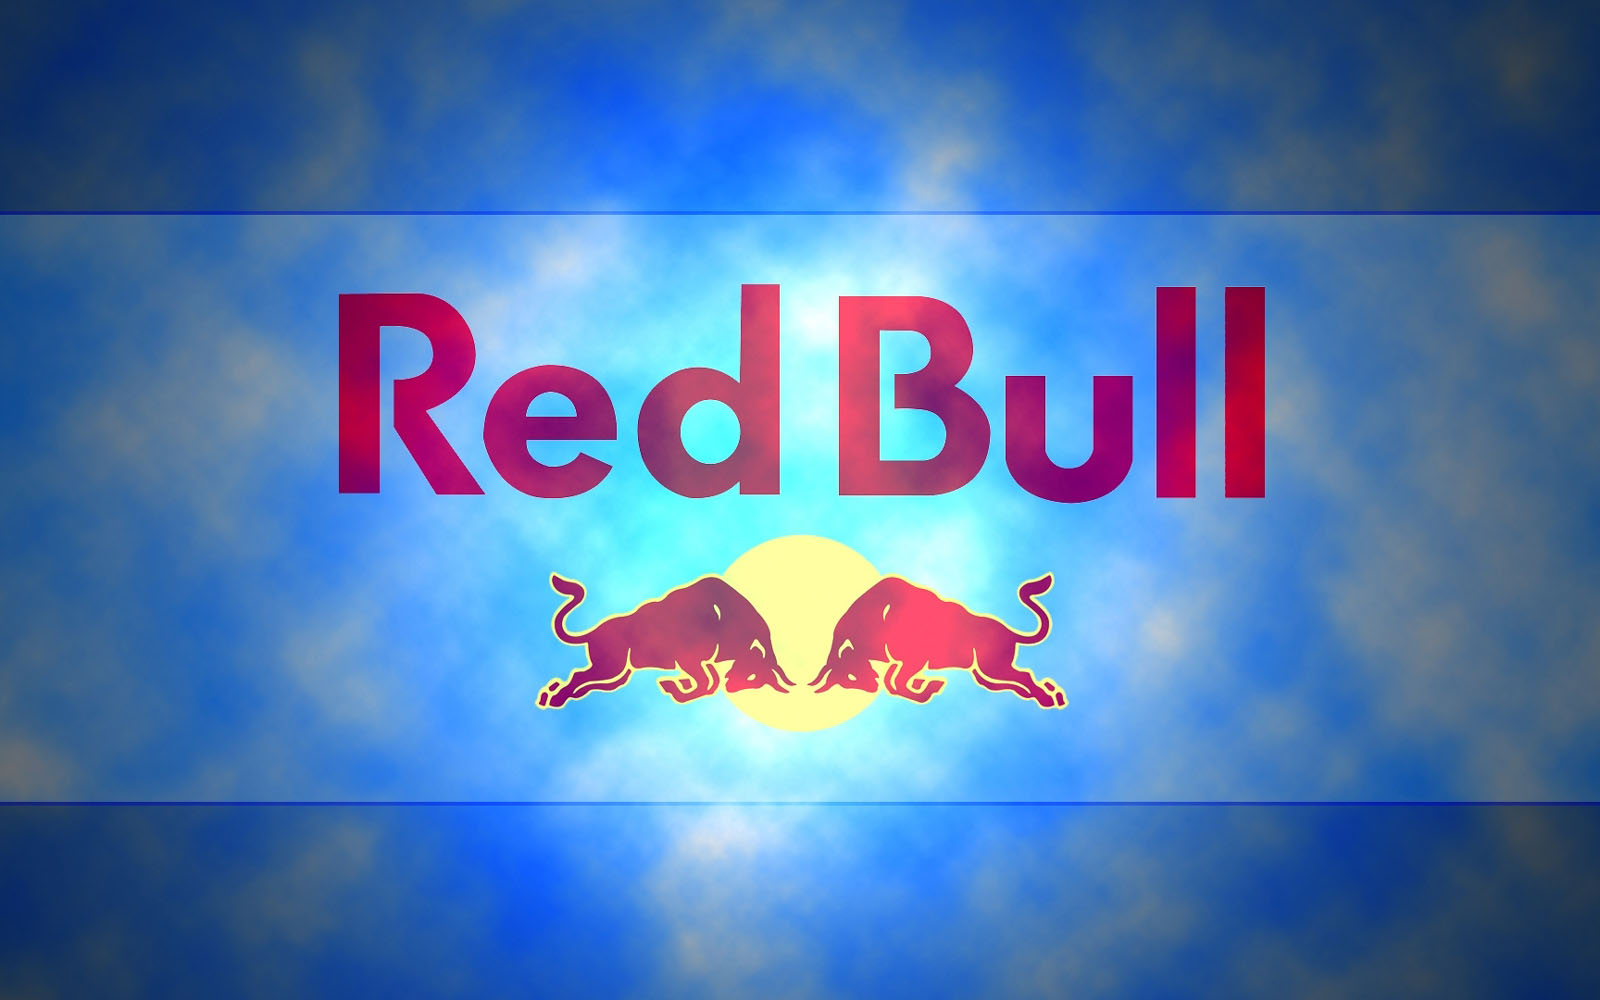 Tag Red Bull Wallpapers Backgrounds Photos Images andPictures for 1600x1000